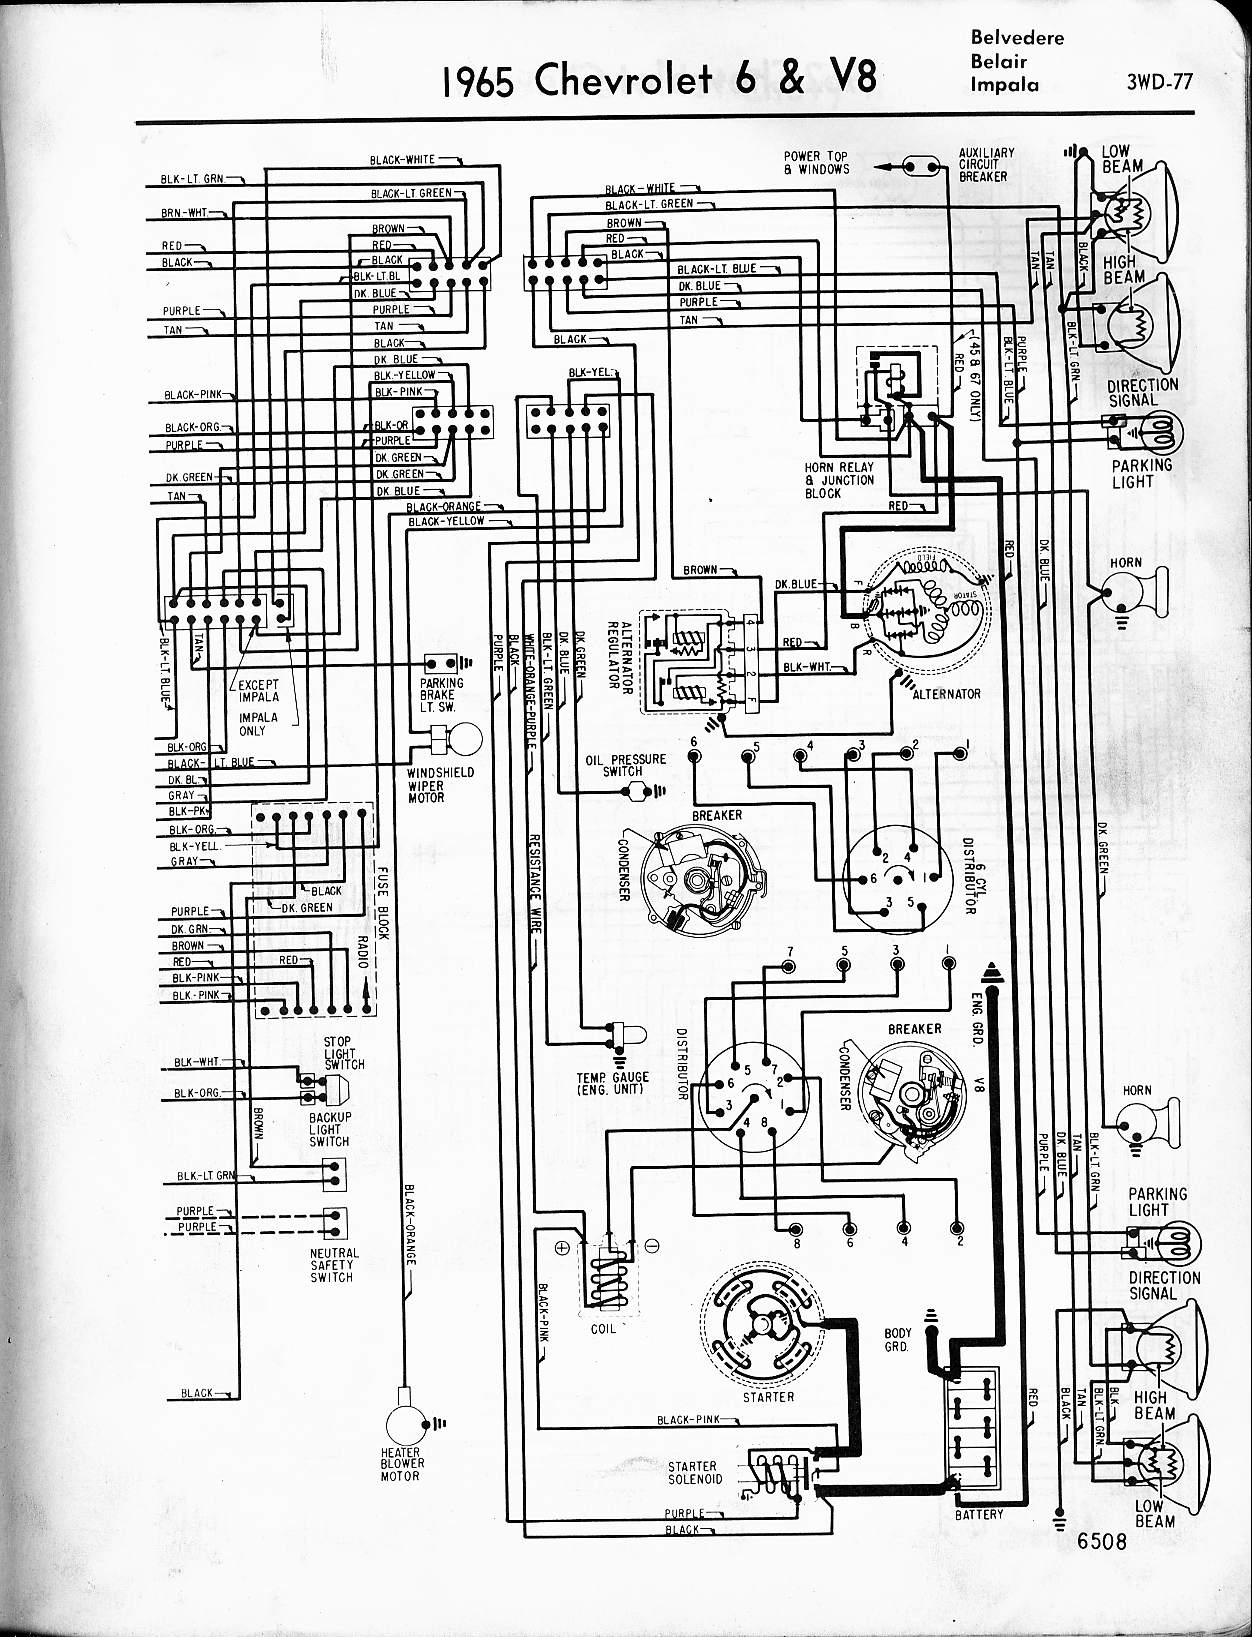 MWireChev65_3WD 077 1970 chevy truck headlight wiring diagram wiring diagram simonand chevrolet wiring harness at gsmportal.co